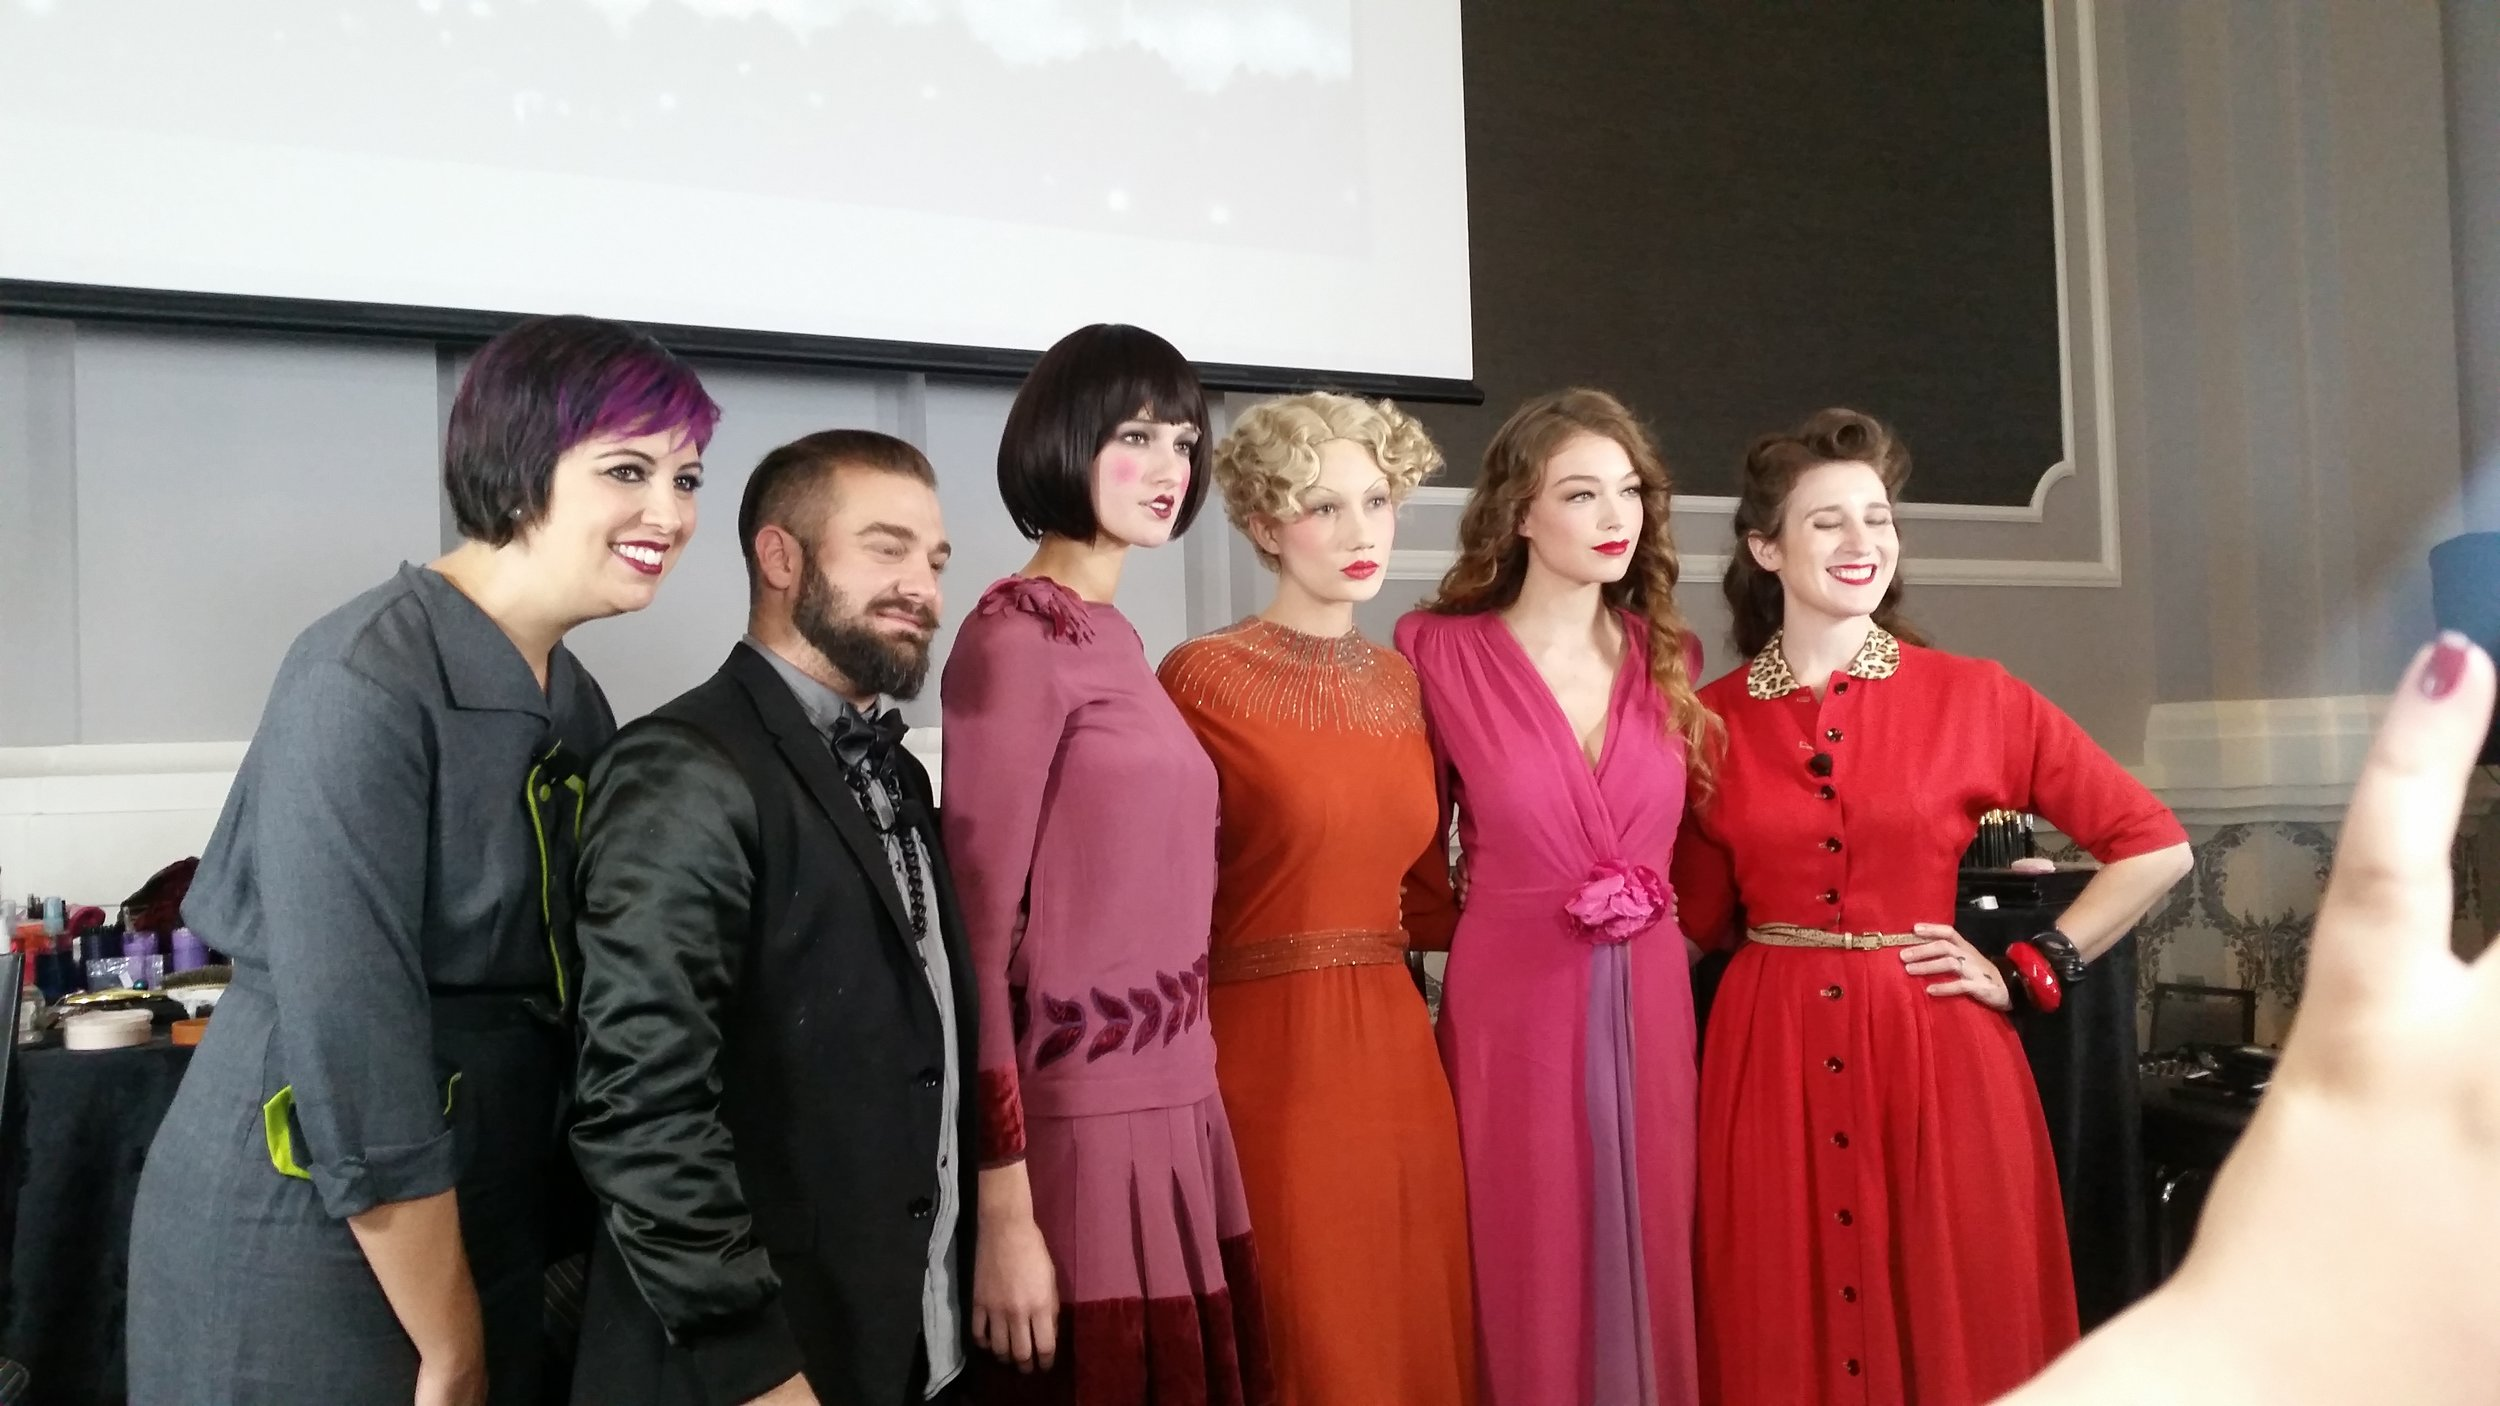 Jessica Padilla, Christopher Milone, Michelle Coursey with their vintage models